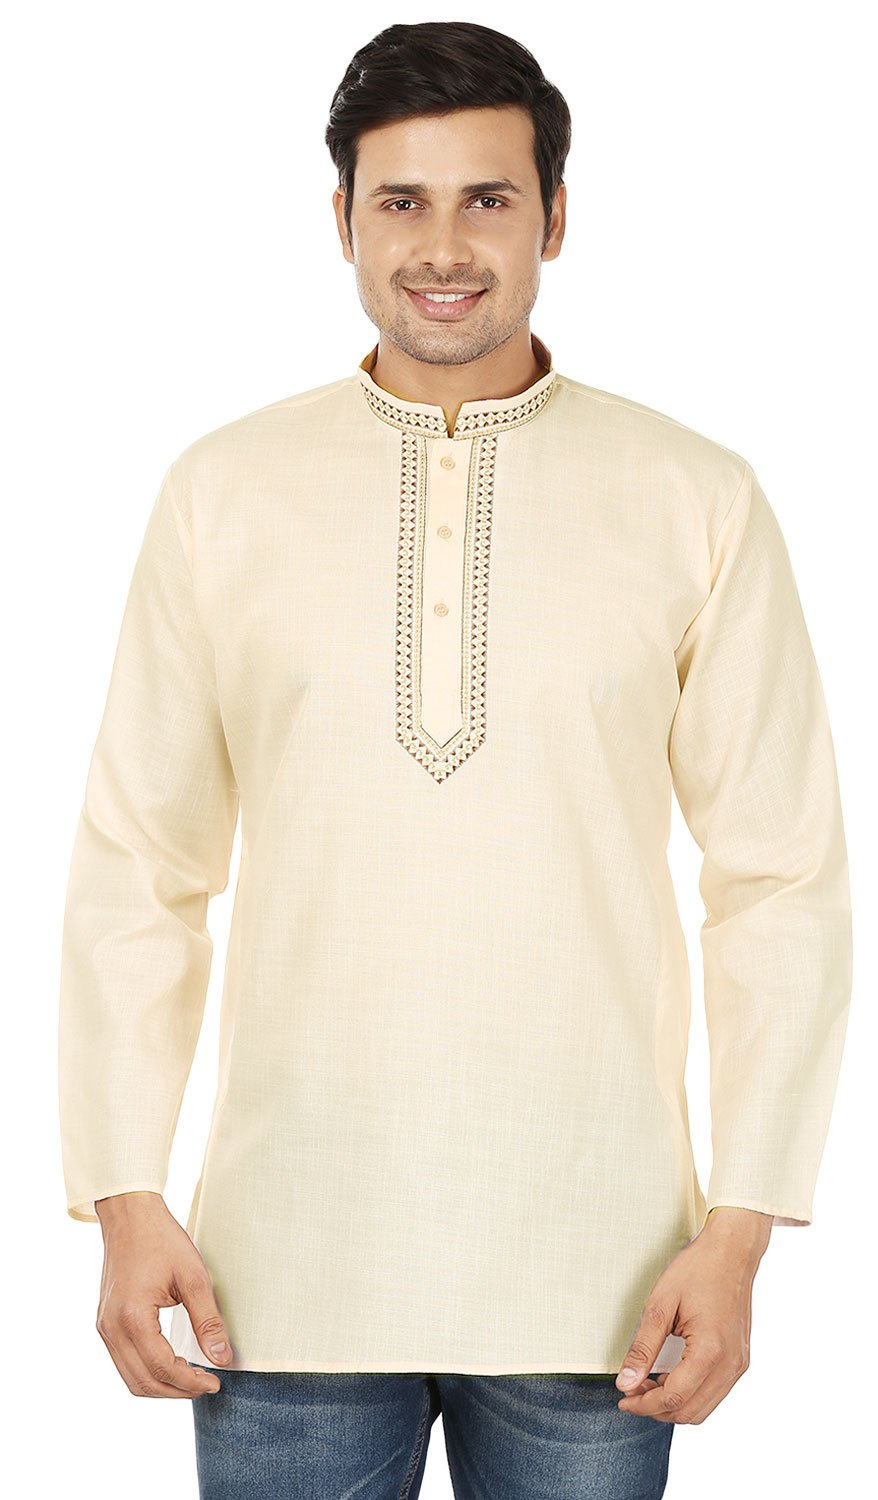 Cotton Embroidered Mens Kurta India Clothing, Creame, Large